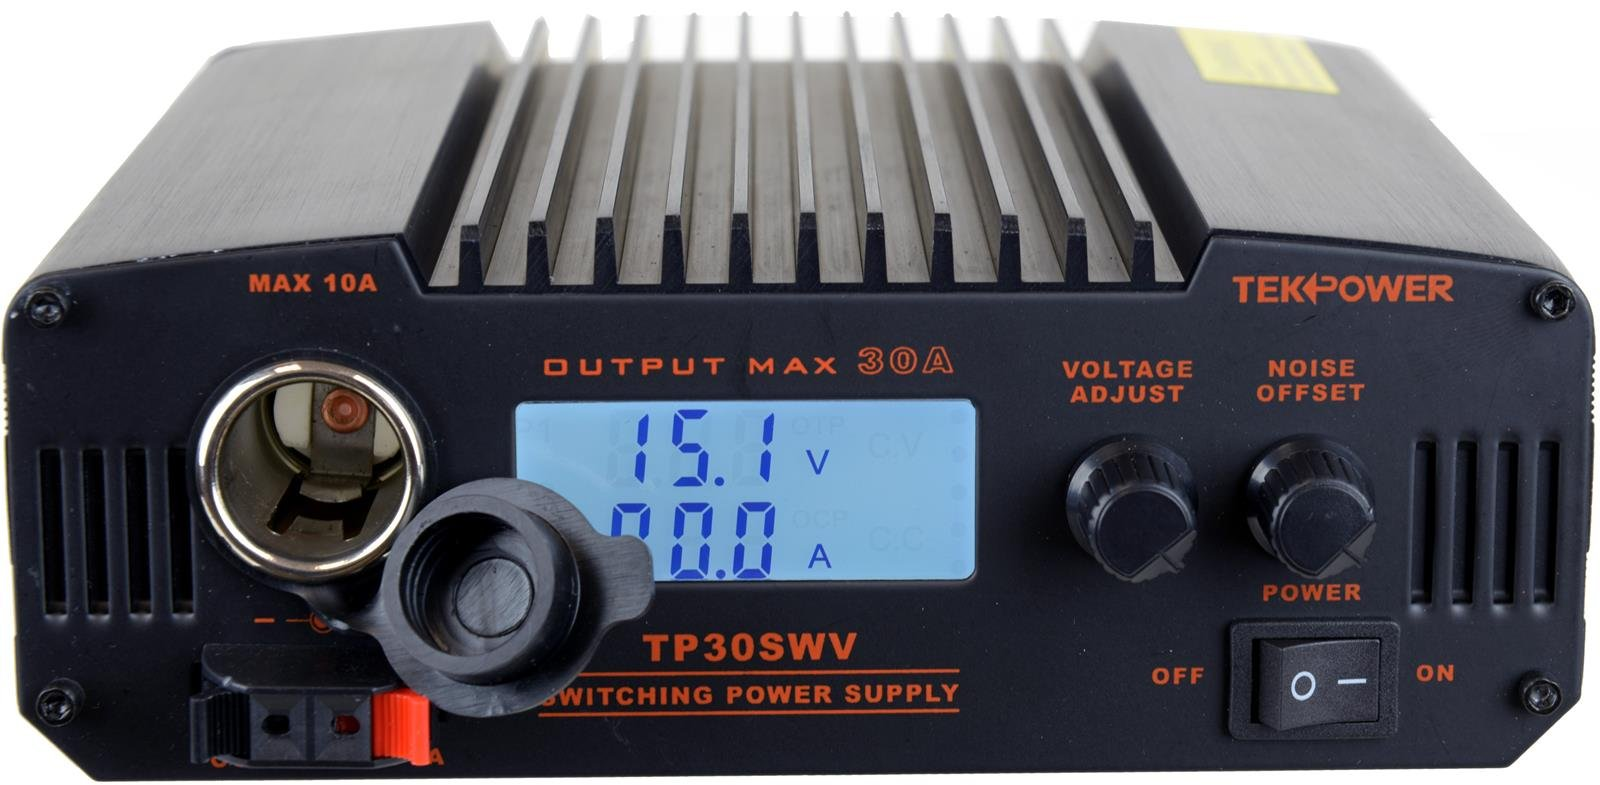 Tekpower Tp30swv 30 Amp Dc 138v Network Radios 10a Power Supply